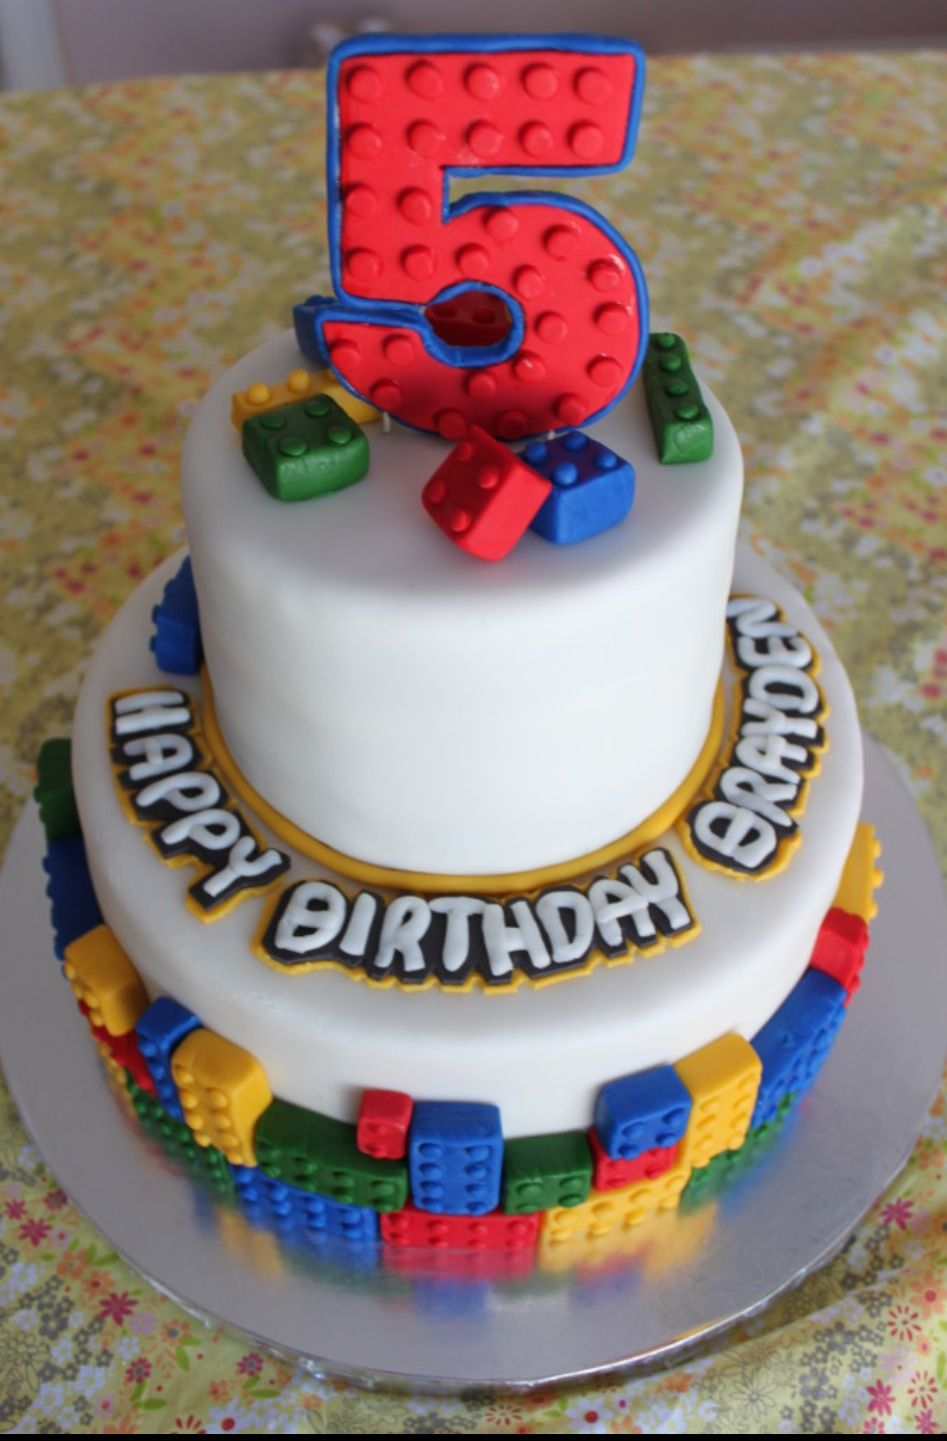 Stupendous Lego Birthday Cake Idea Like Bricks Around Base And Scattered On Funny Birthday Cards Online Barepcheapnameinfo